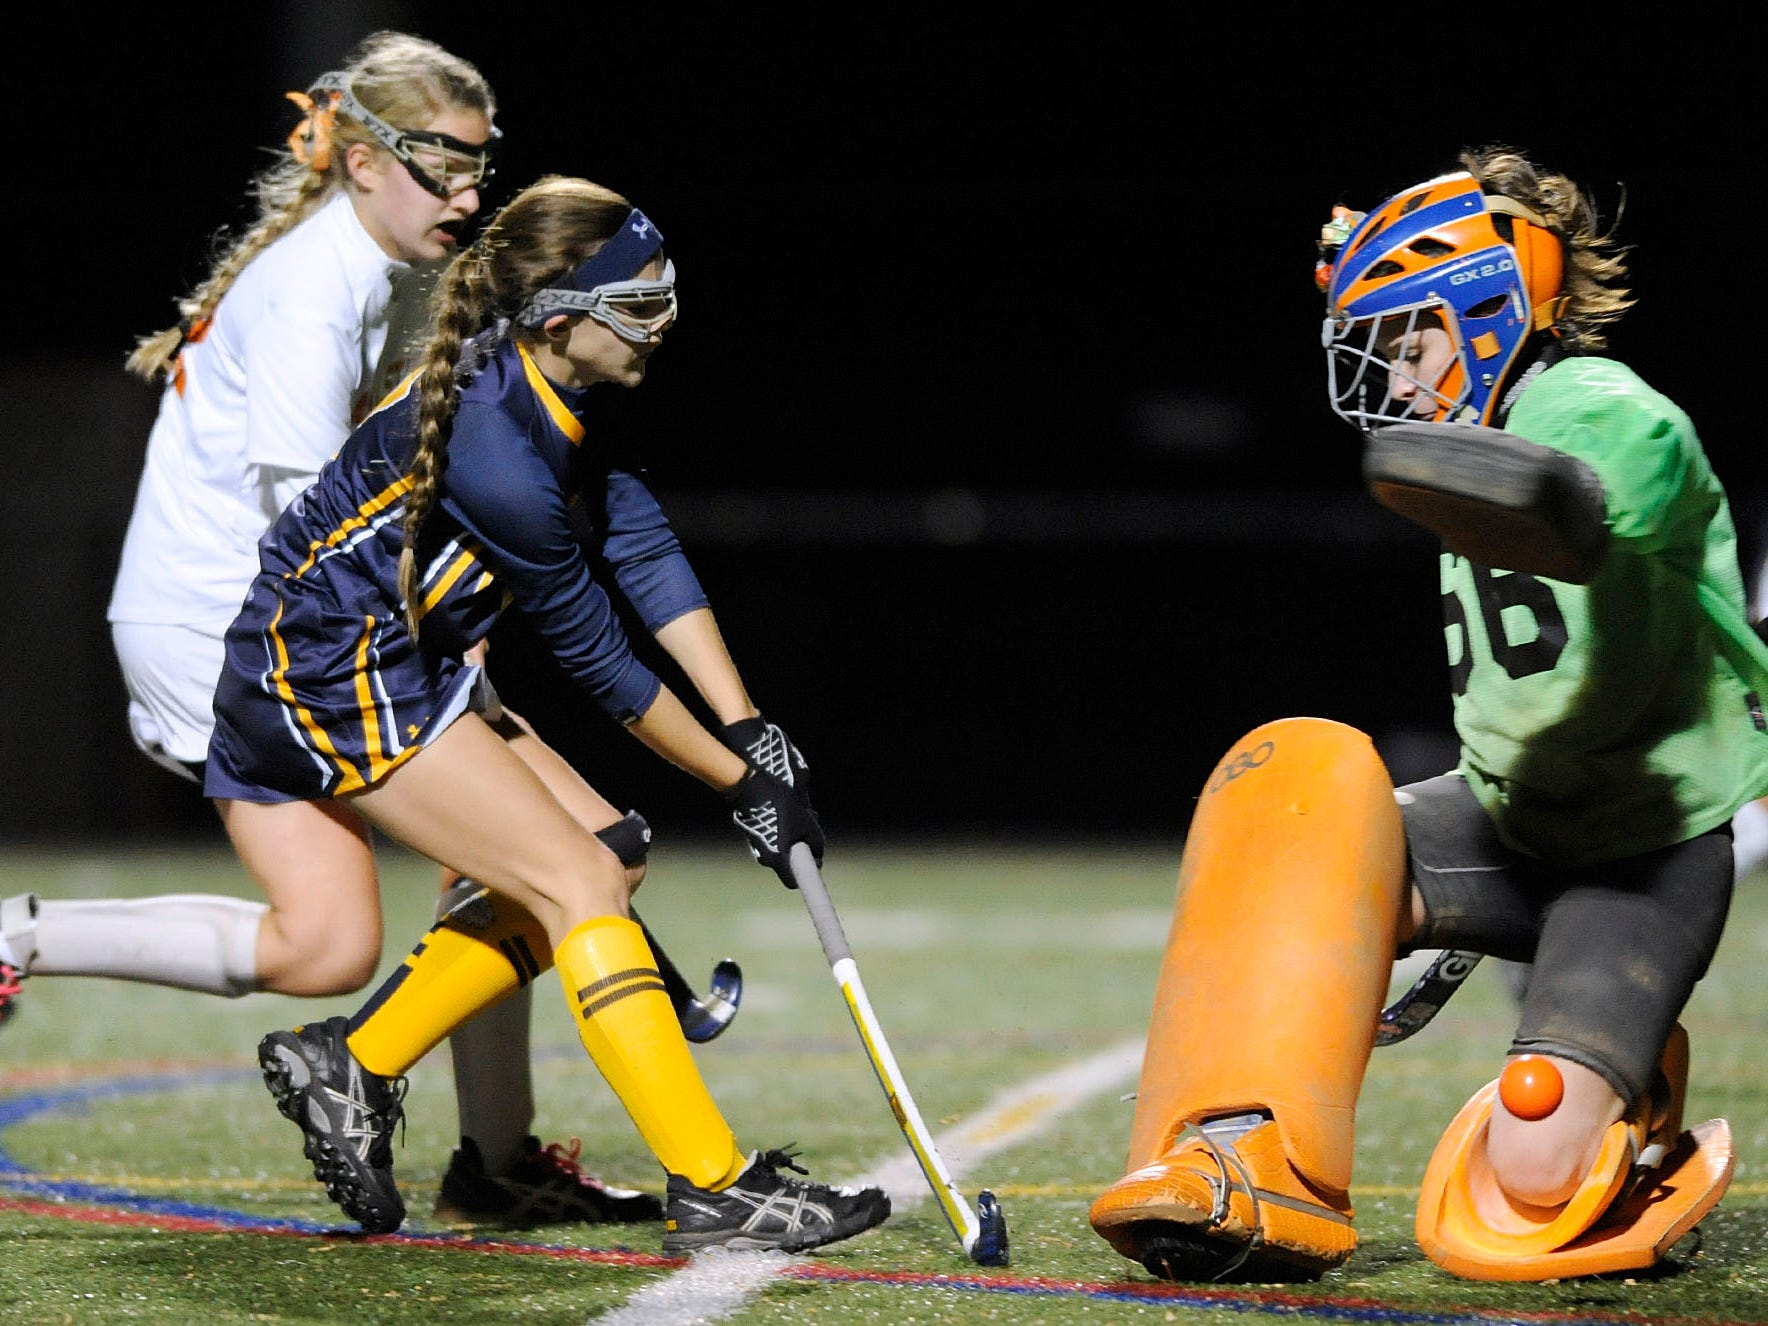 Pocomoke's Peyton Becker, second from left, trailed by Kate Bradley, left, hits a ball past Fallston goalkeeper Caitlin Phillips, right, in the first half of a state semifinal field hockey game Monday, Nov. 3, 2014 in Annapolis. Becker did not score on the play. (Photo by Steve Ruark for The Daily Times)